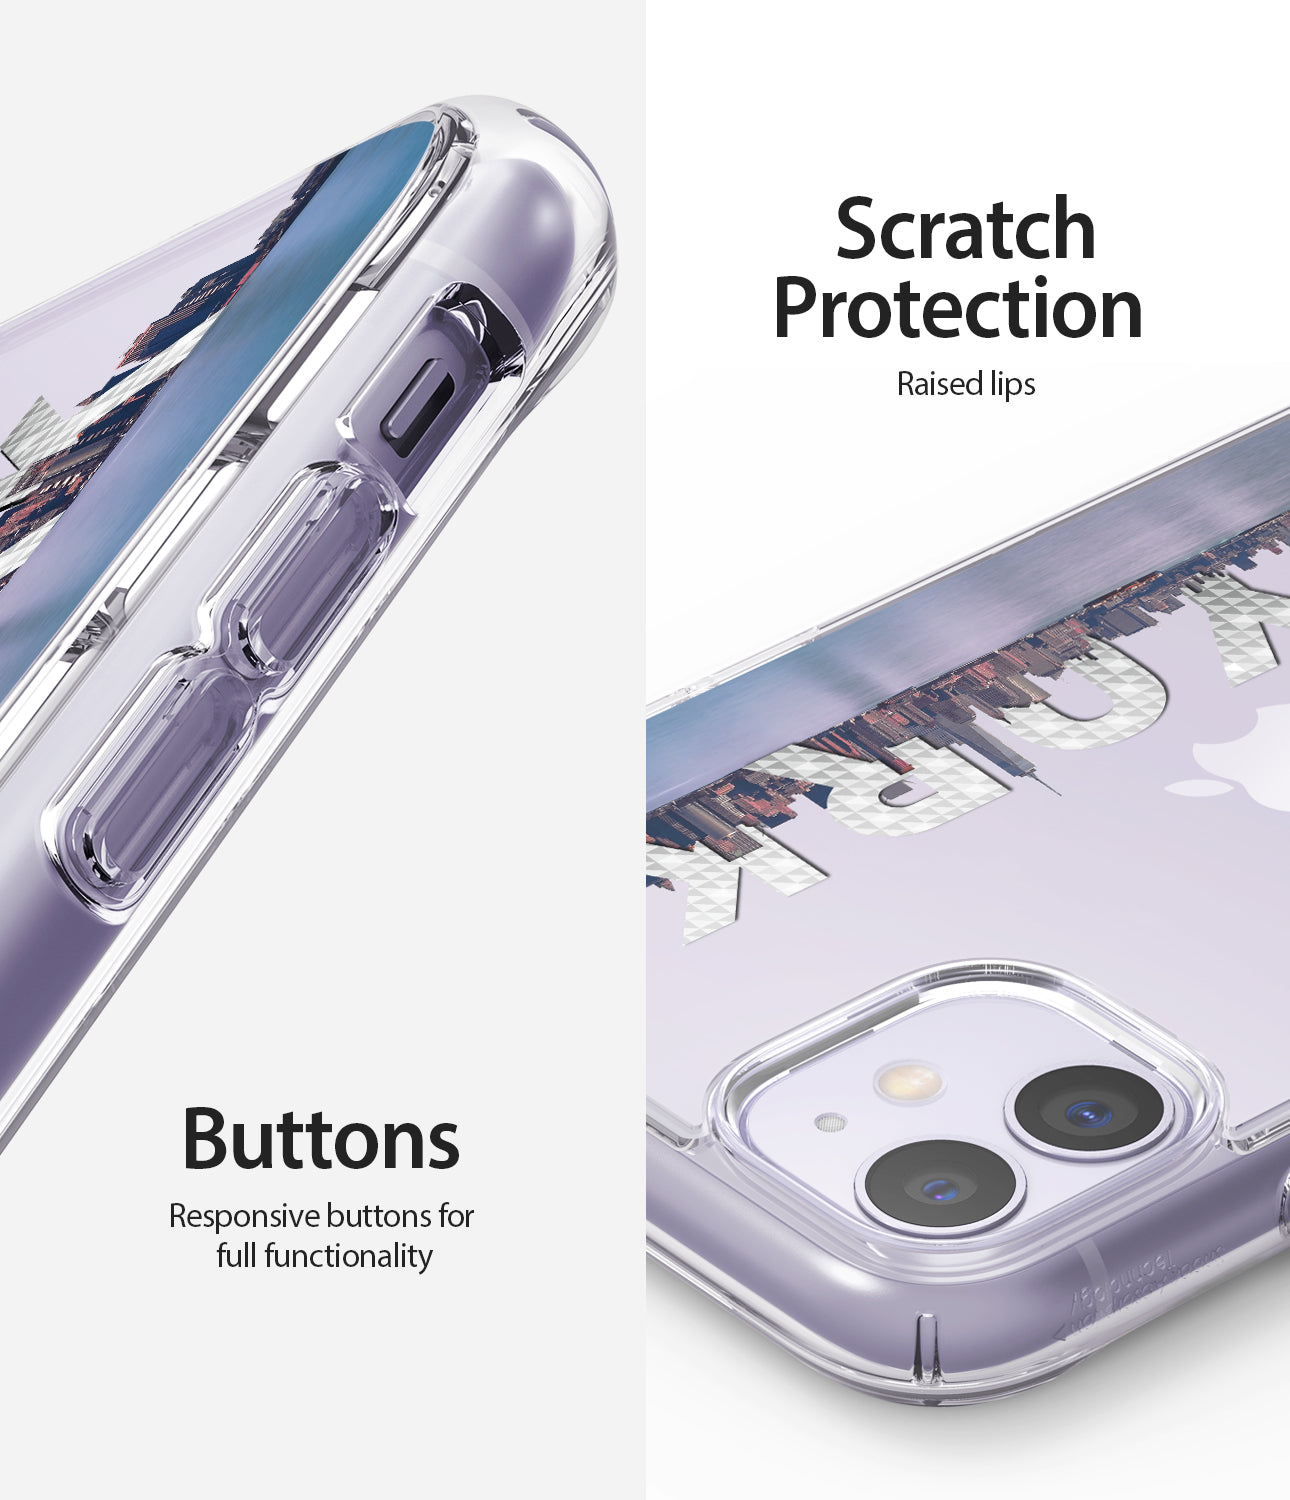 scratch protection / repsonsive buttons